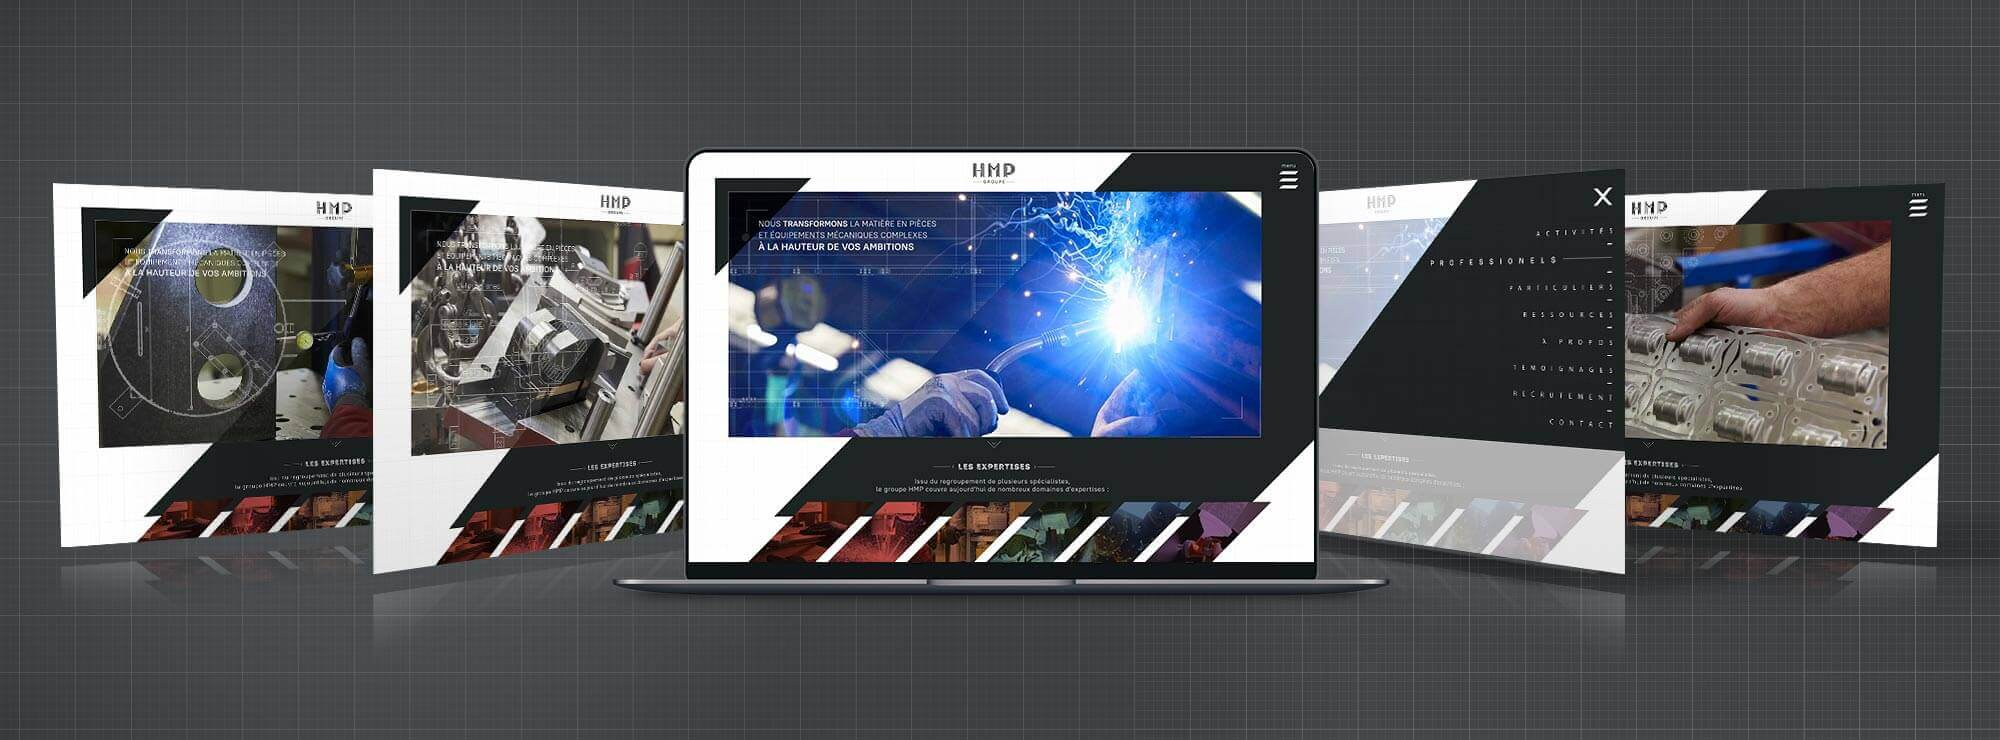 01 hmp home metallurgie ordinateur ecran machines.jpg